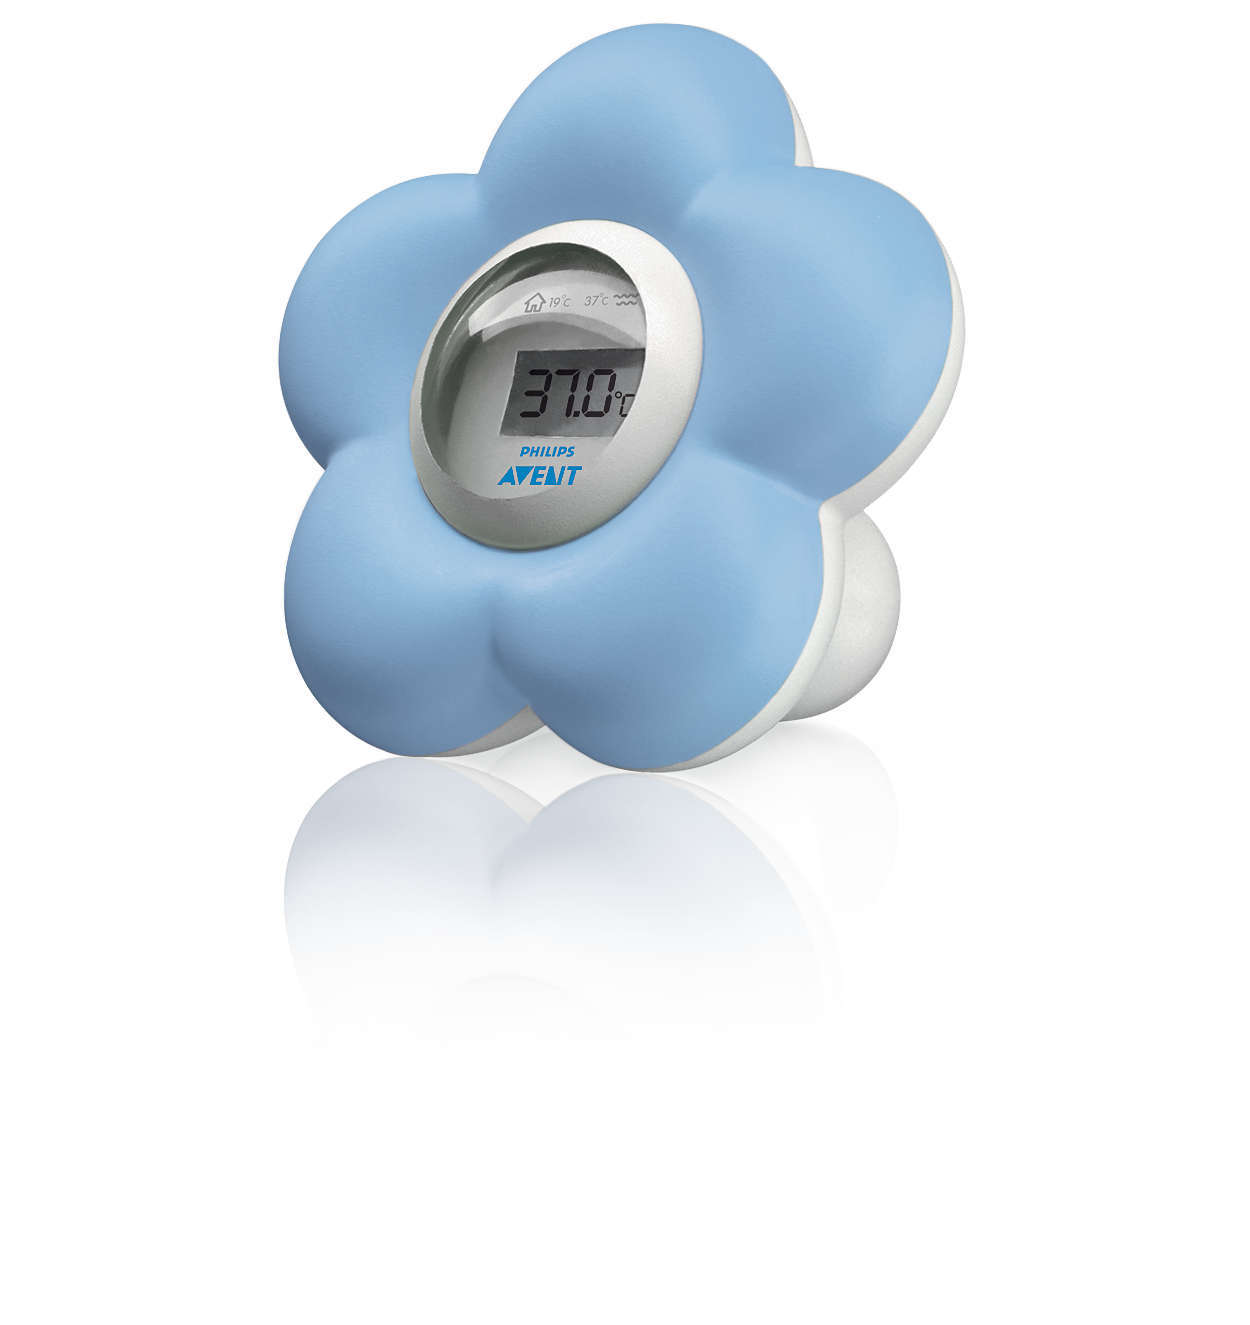 Philips Avent Bath & Bedroom Thermometer - Blue image